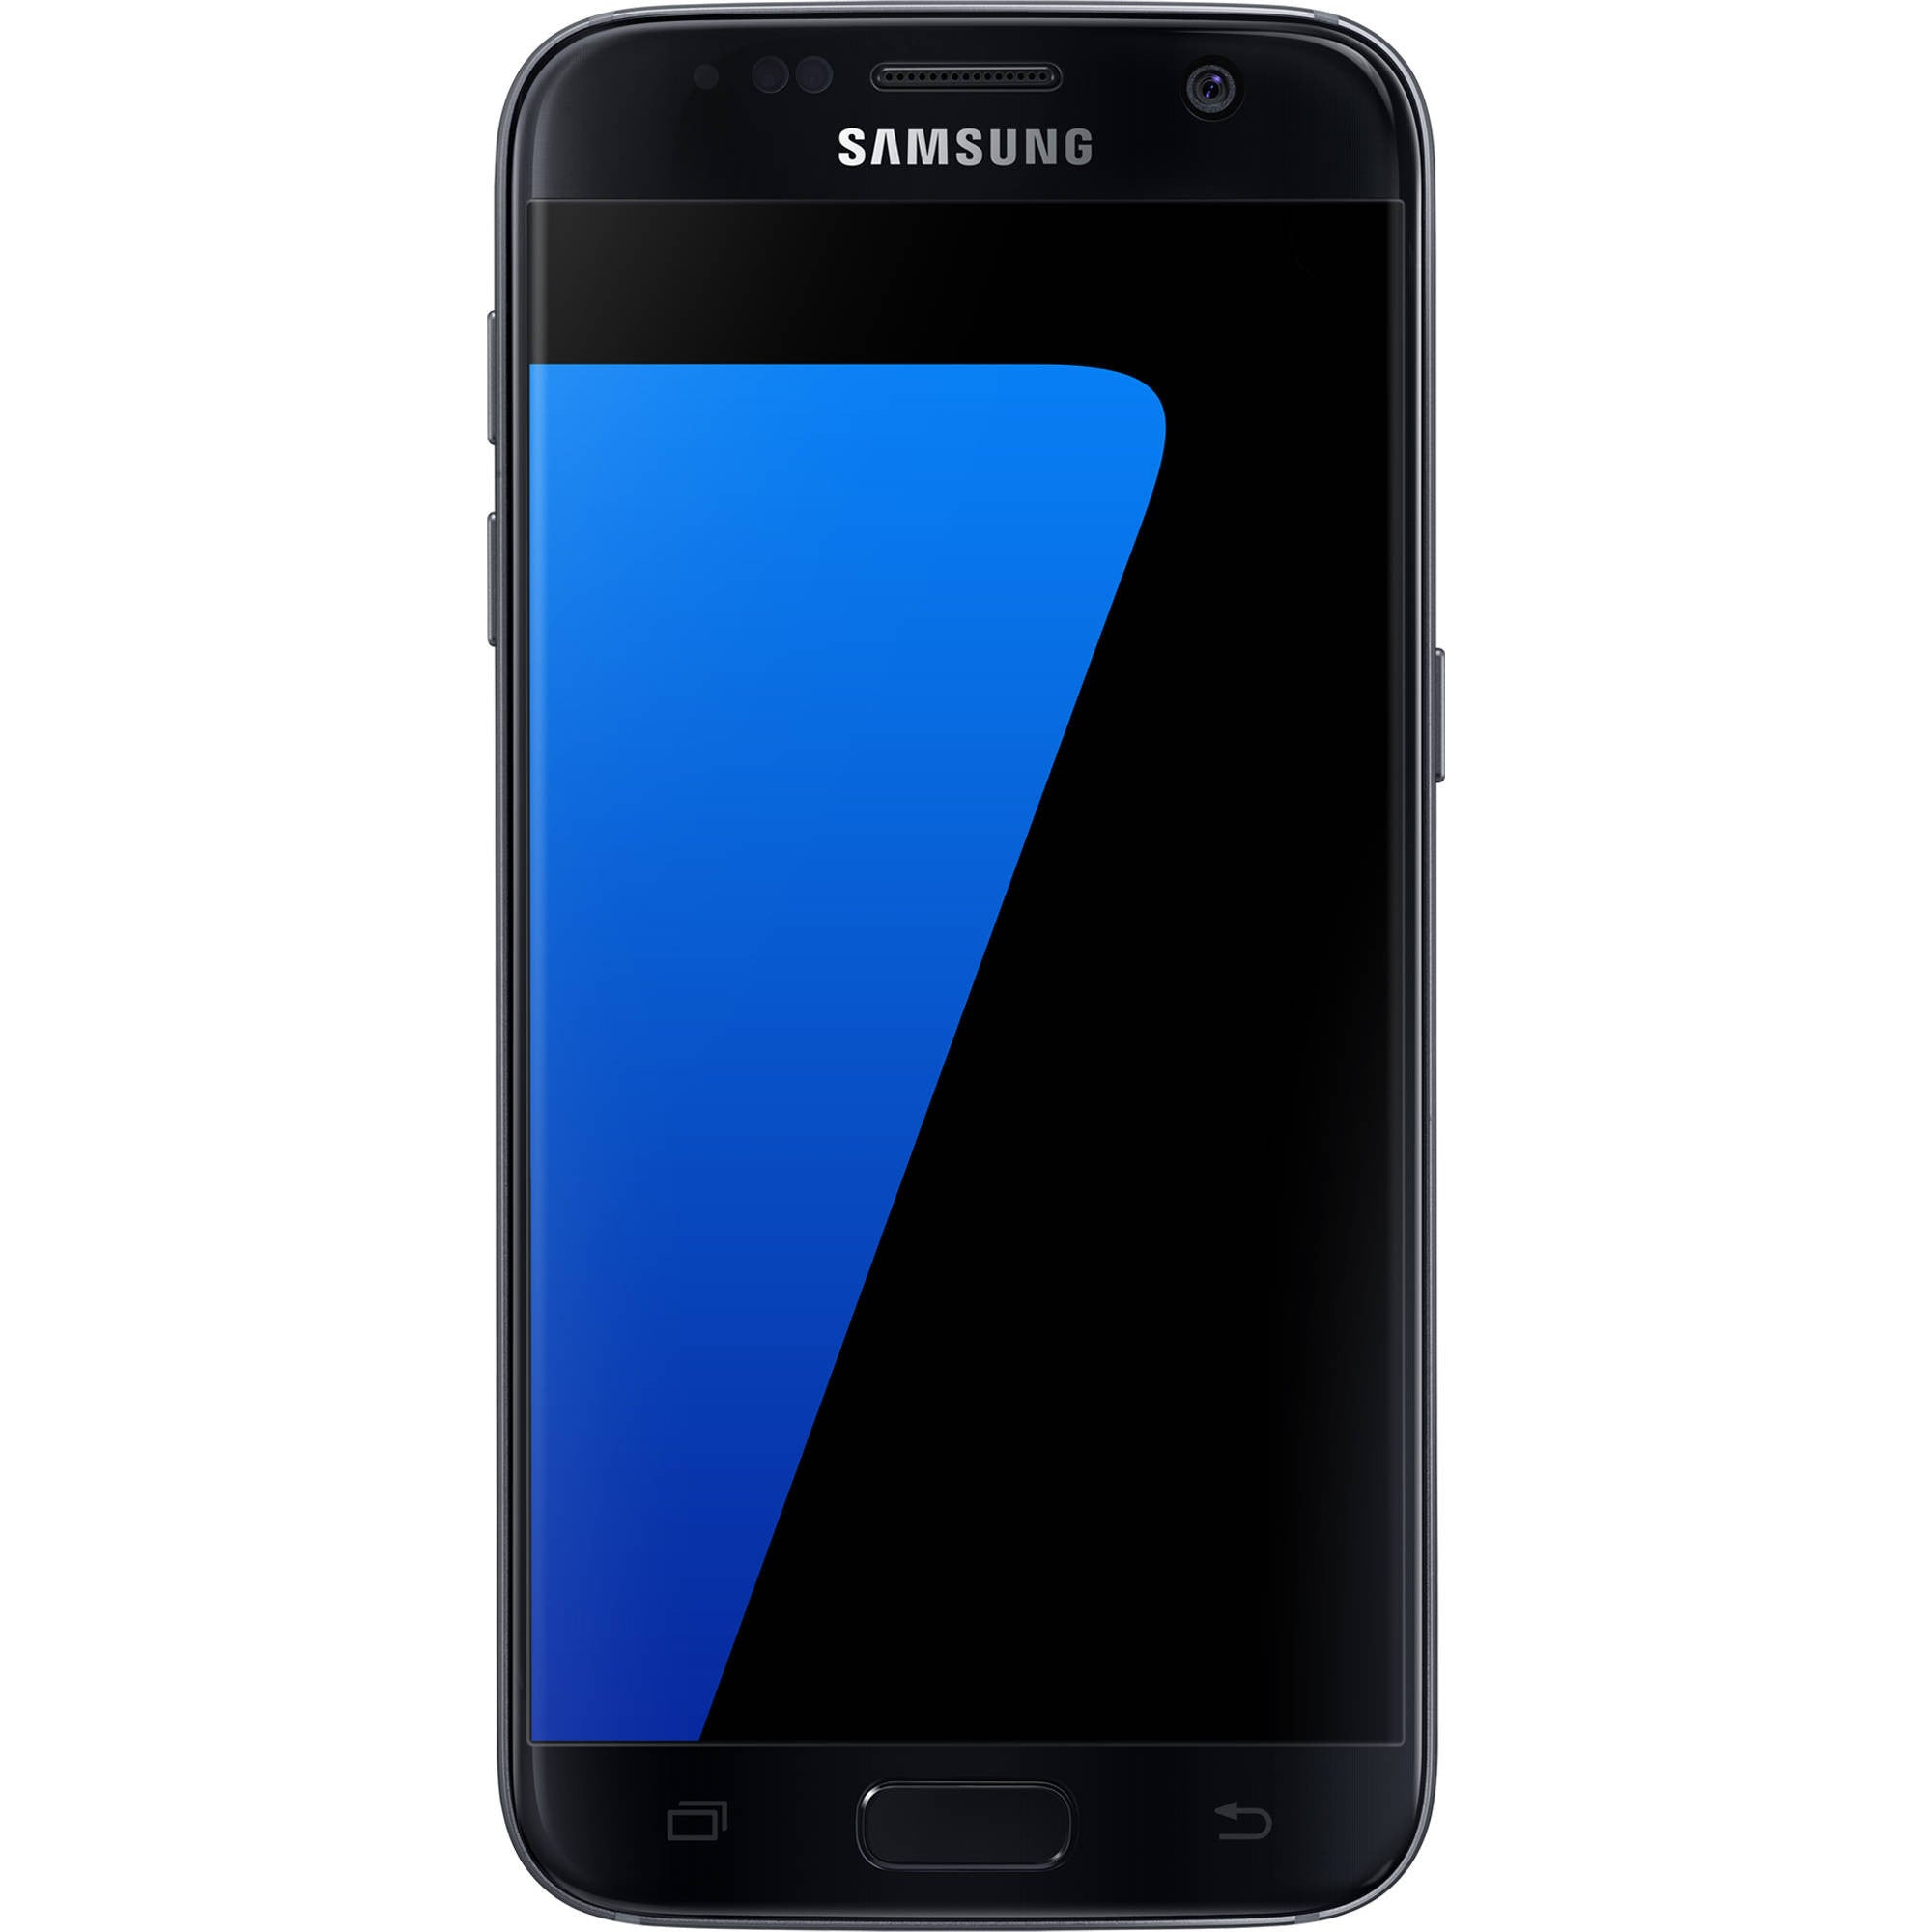 Samsung Galaxy S7 (Black Onyx, 32gb, Local Stock)